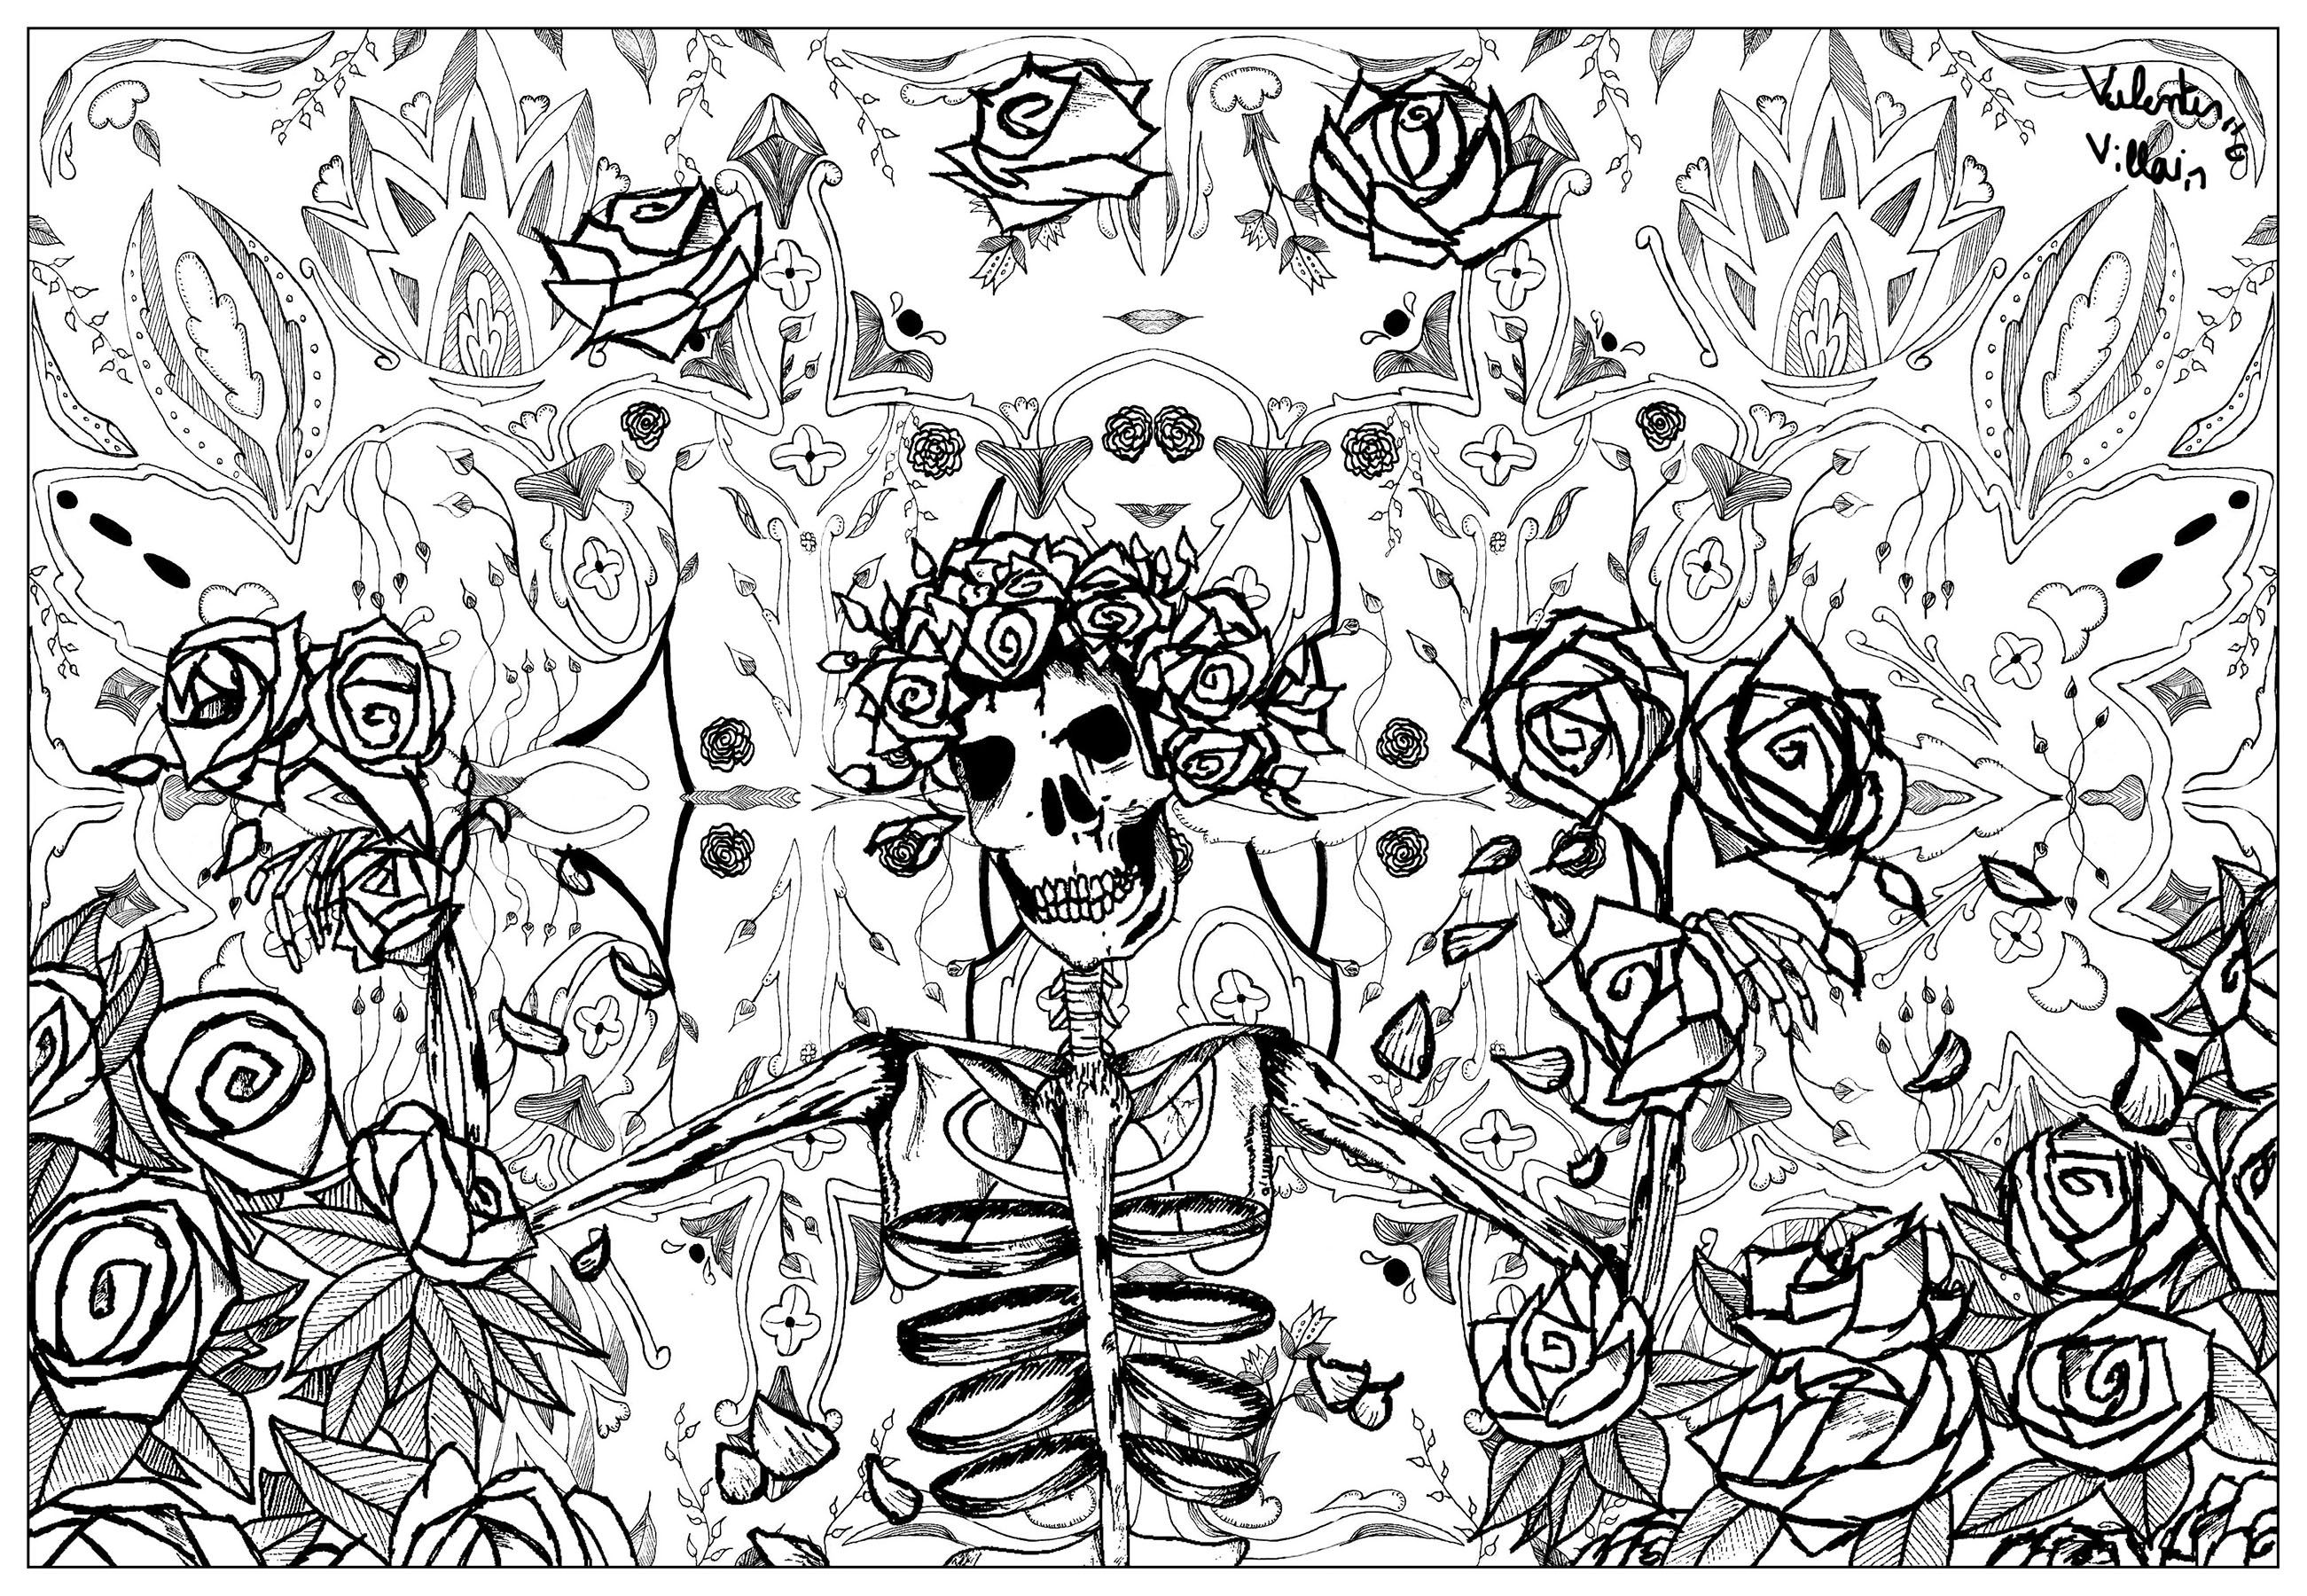 Grateful Dead Art By Valentin Psychedelic Coloring Pages For Grateful Dead Colorong Pages